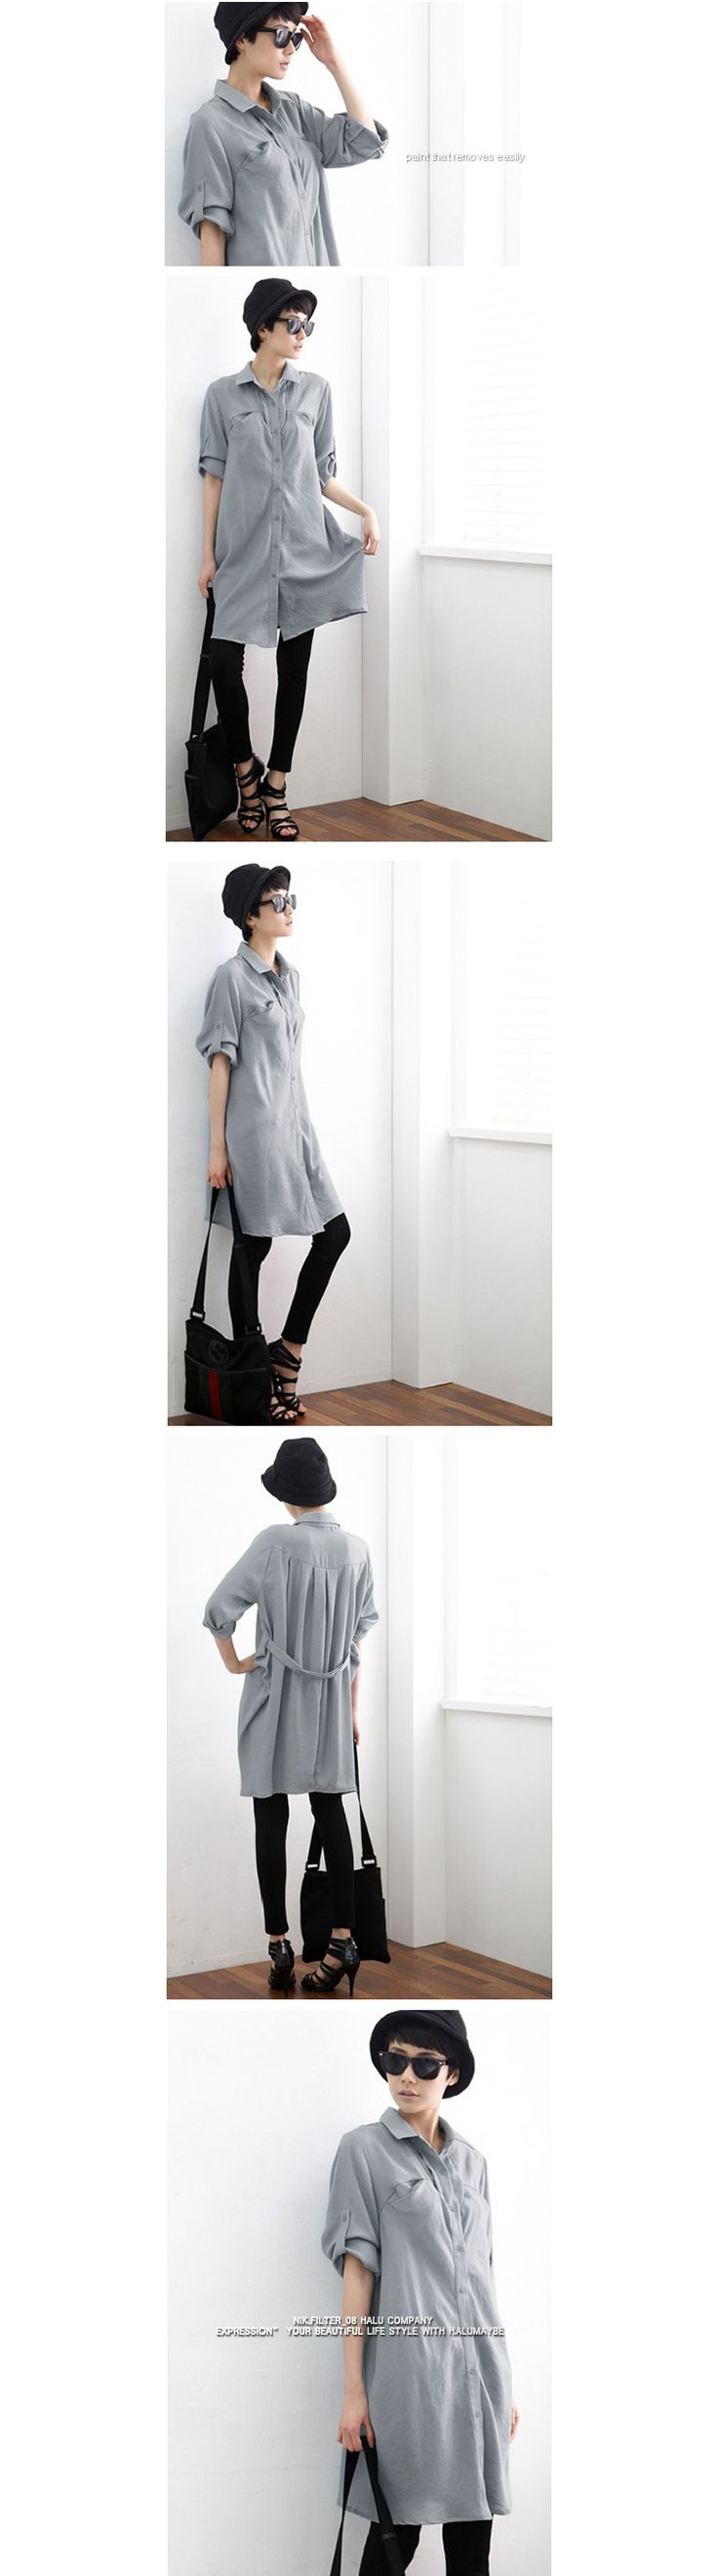 NO REASON2013 spring original design retro fashion Korean Long-sleeved shirt x1097 loose - Taobao